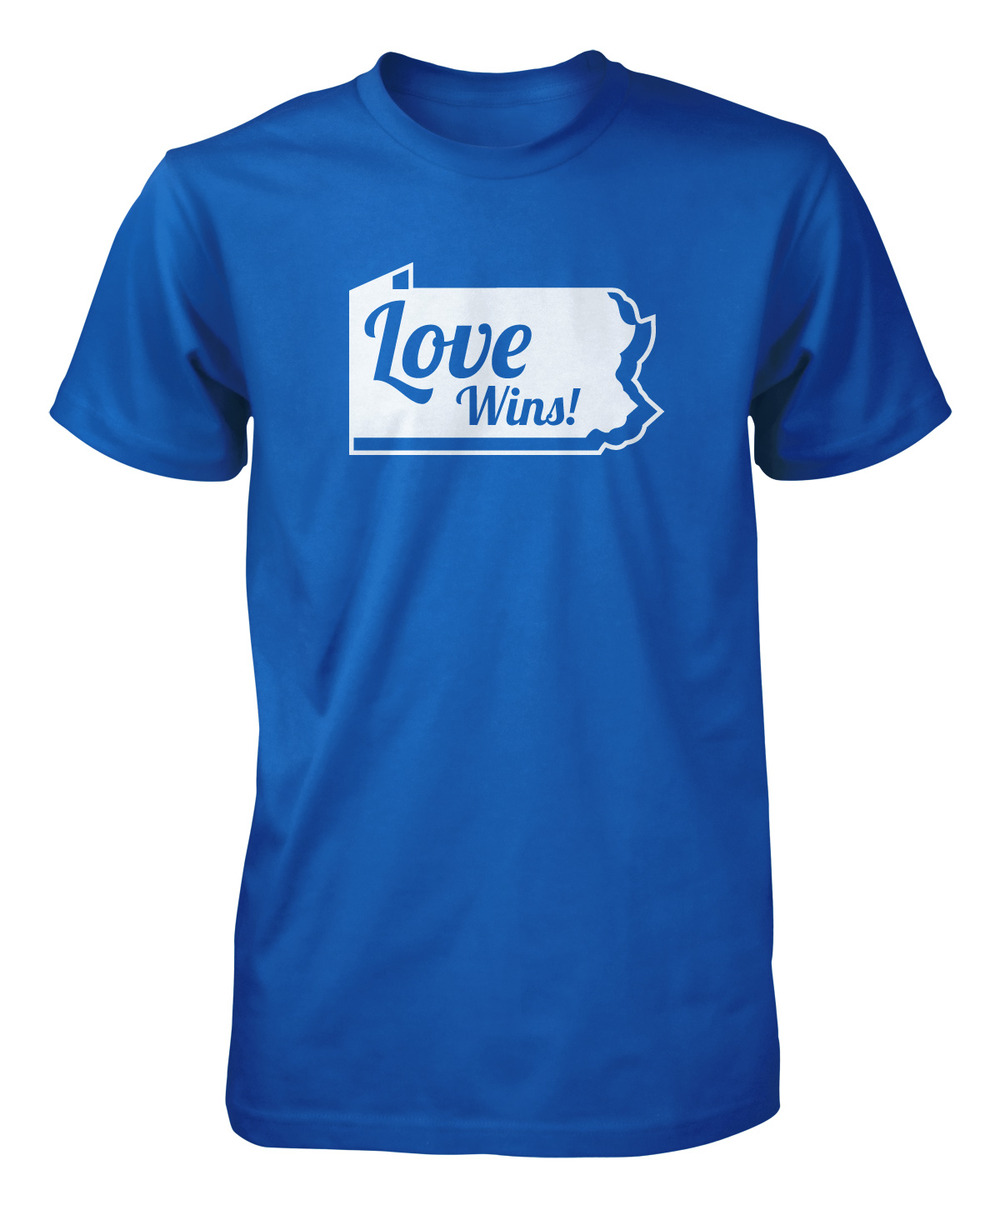 PA Love Limited Edition Tee